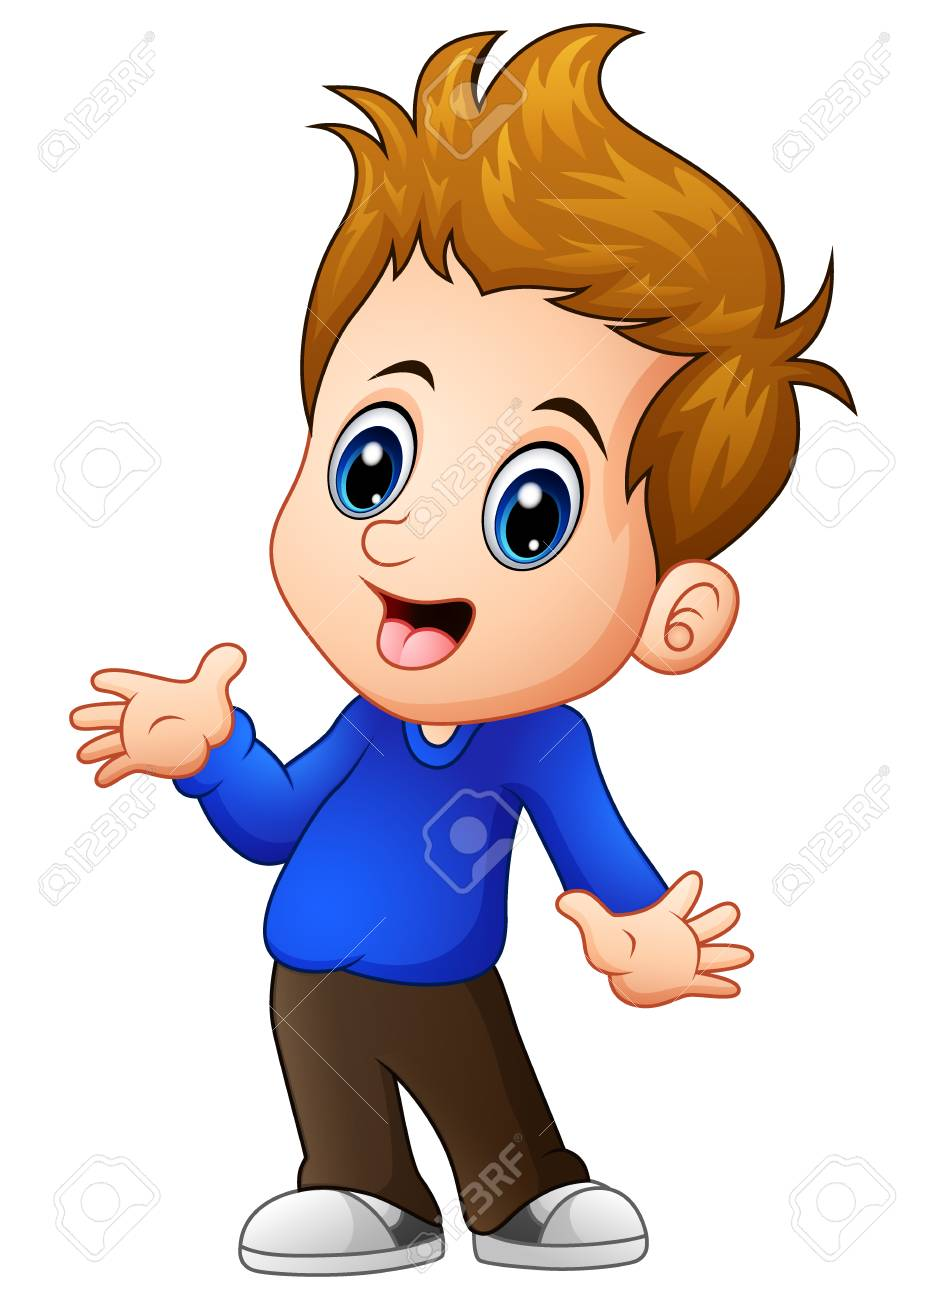 Cute Boy Cartoon Posing Stock Photo Picture And Royalty Free Image